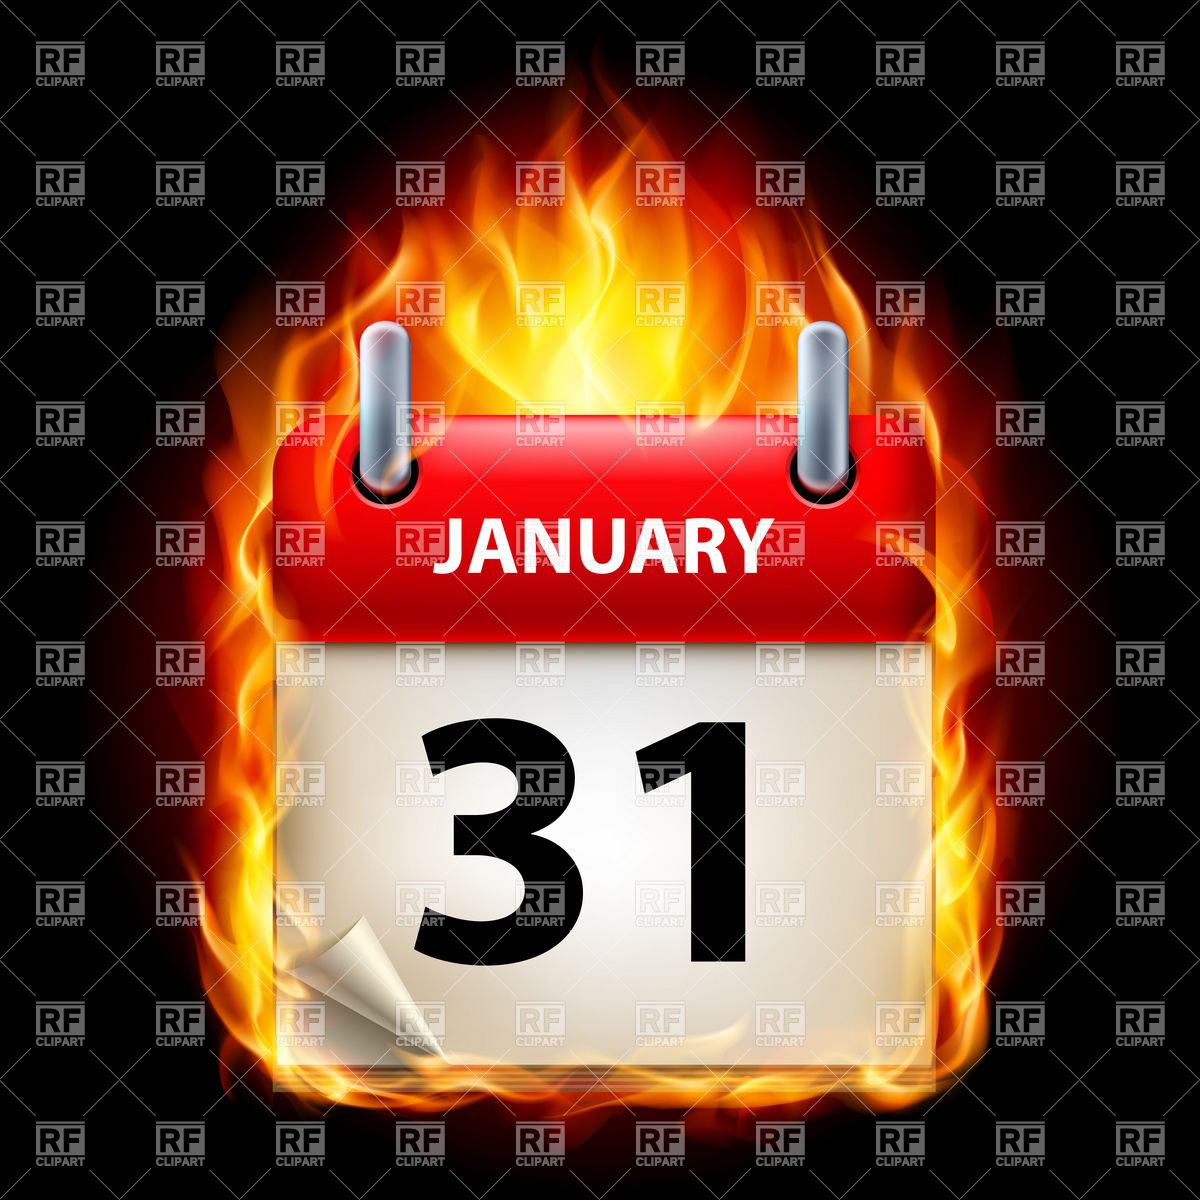 January 31 calendar clipart picture royalty free download January 31 calendar clipart - ClipartFest picture royalty free download